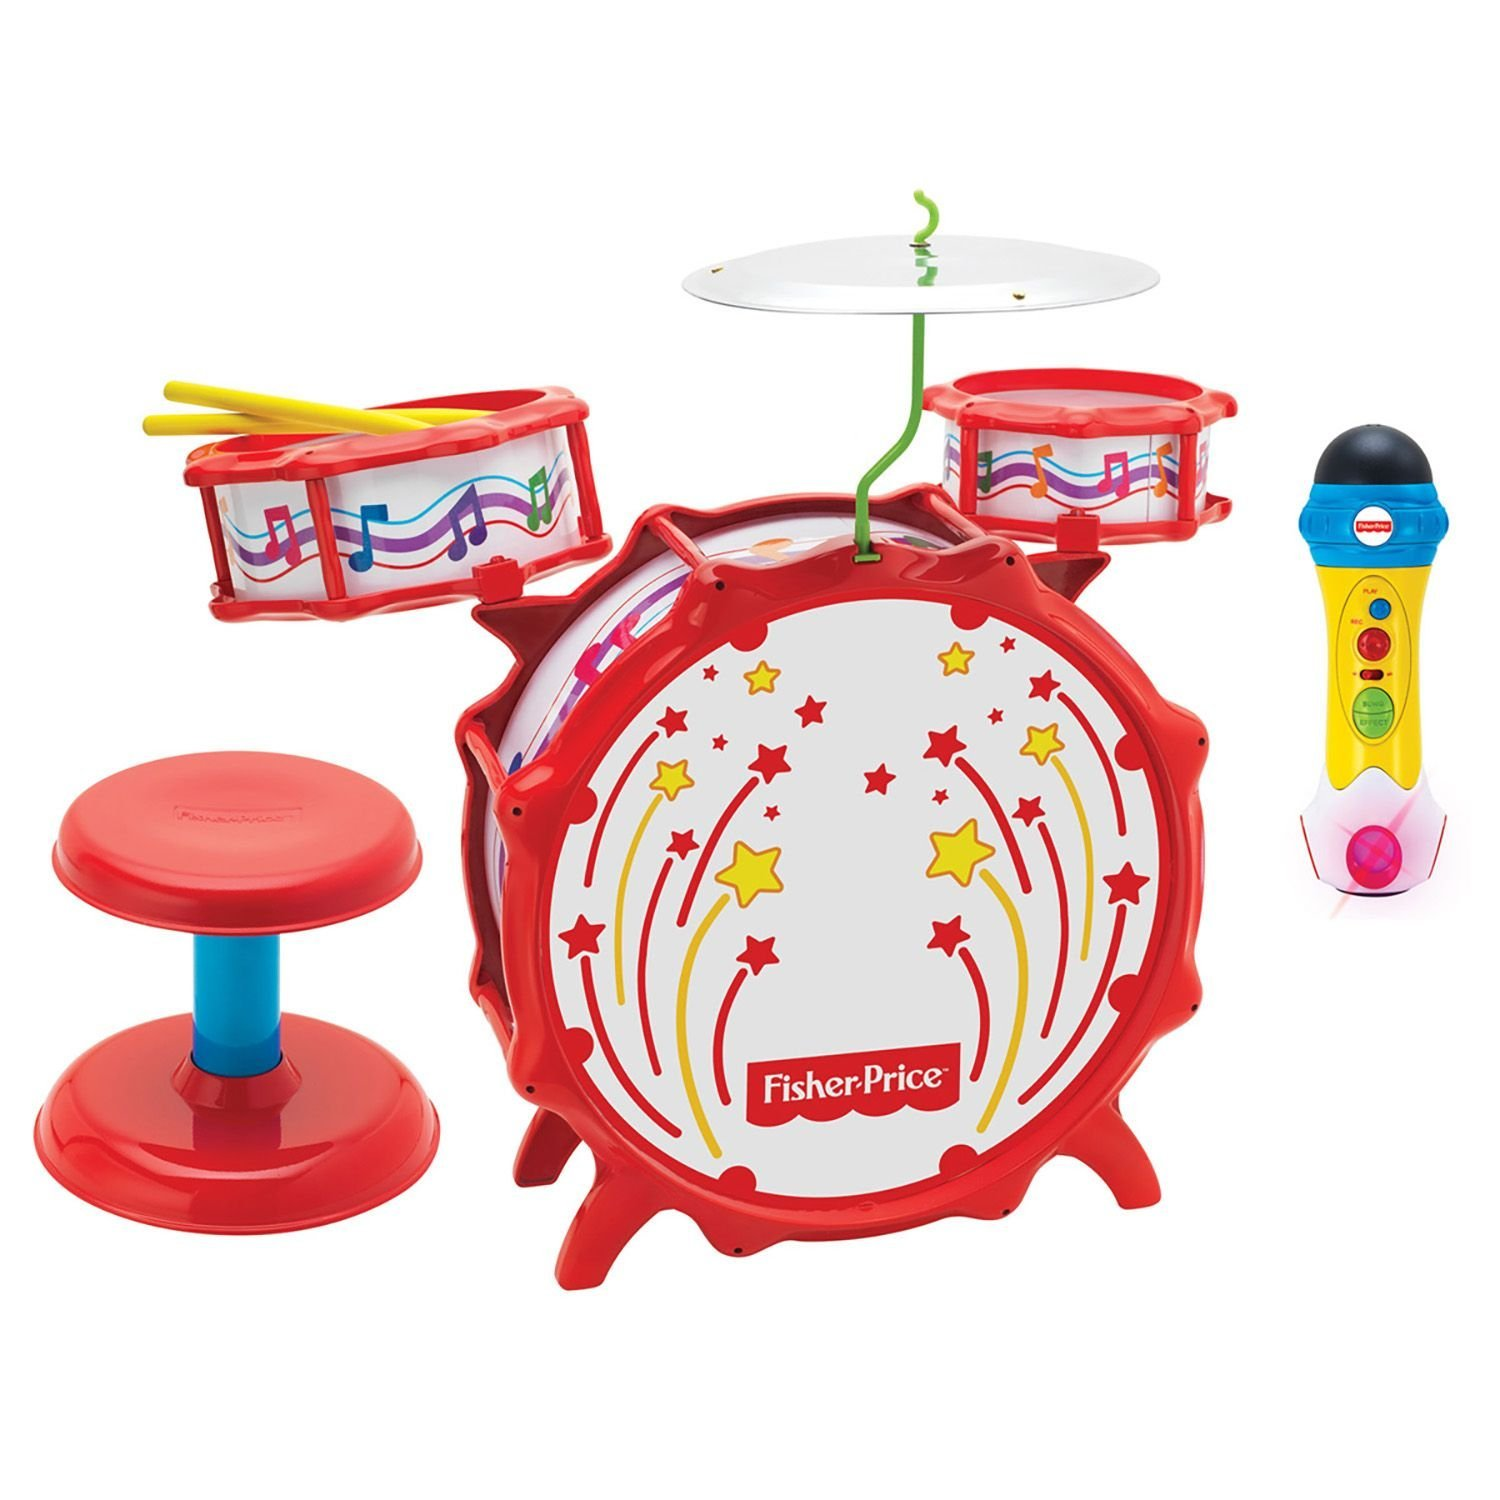 Fisher Price Big Bang Drumset & Rappin' Recording Microphone by FISHER PRICE